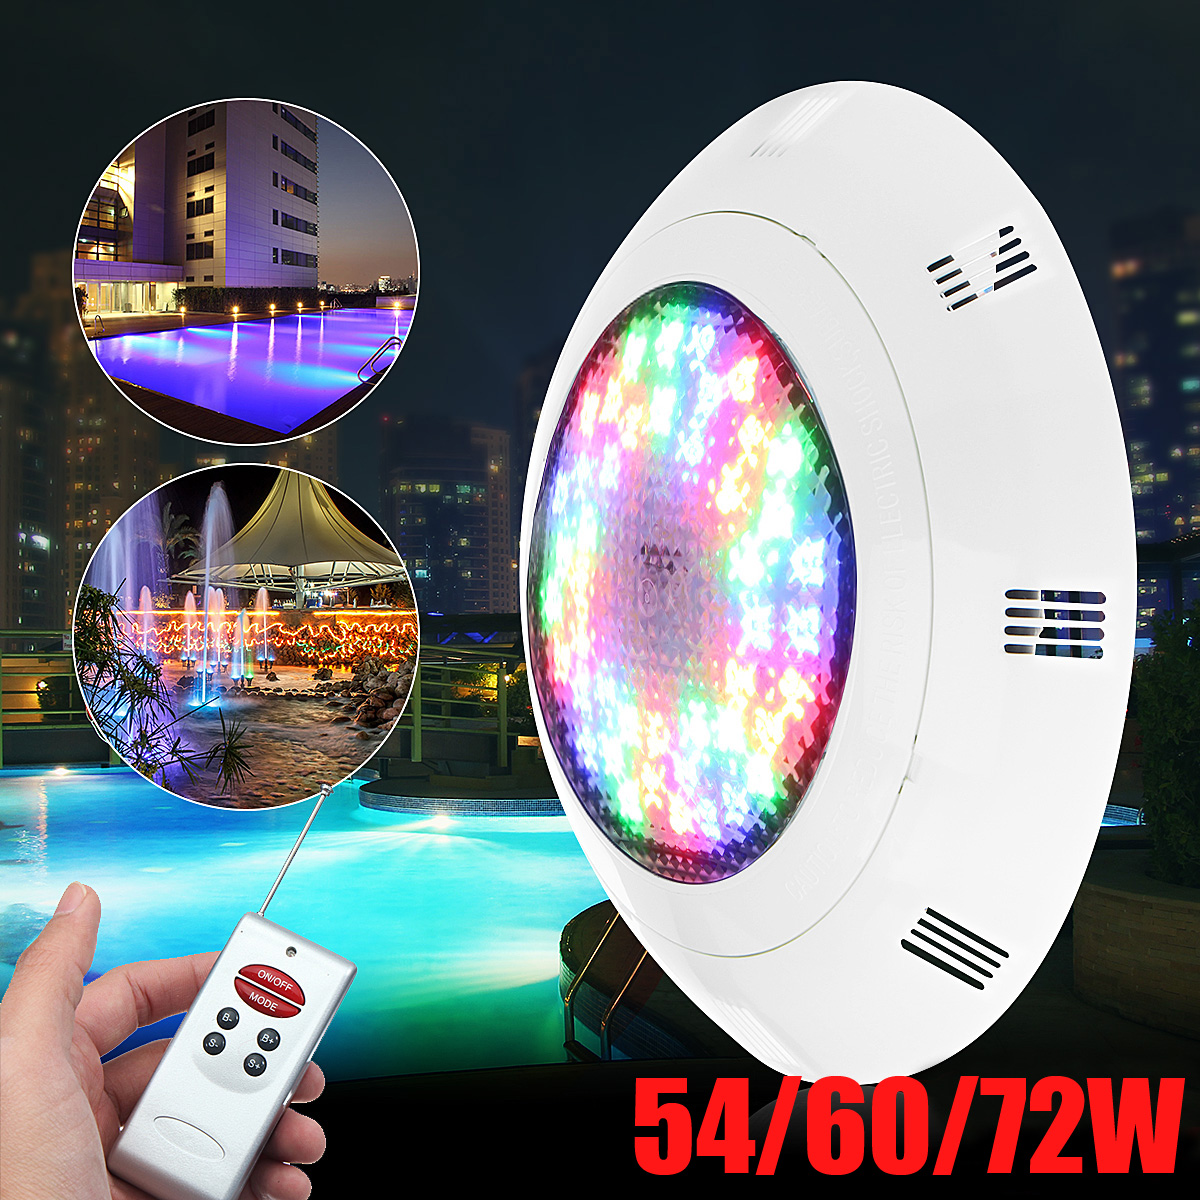 54/60/72W Waterproof RGB LED Swimming Pool Underrwater LED Light IP68 12V 7 Color Wall Mounted Pond Lighting + Remote Control best quality waterproof ip68 rgb multi color remote control induction charge led table light tubes